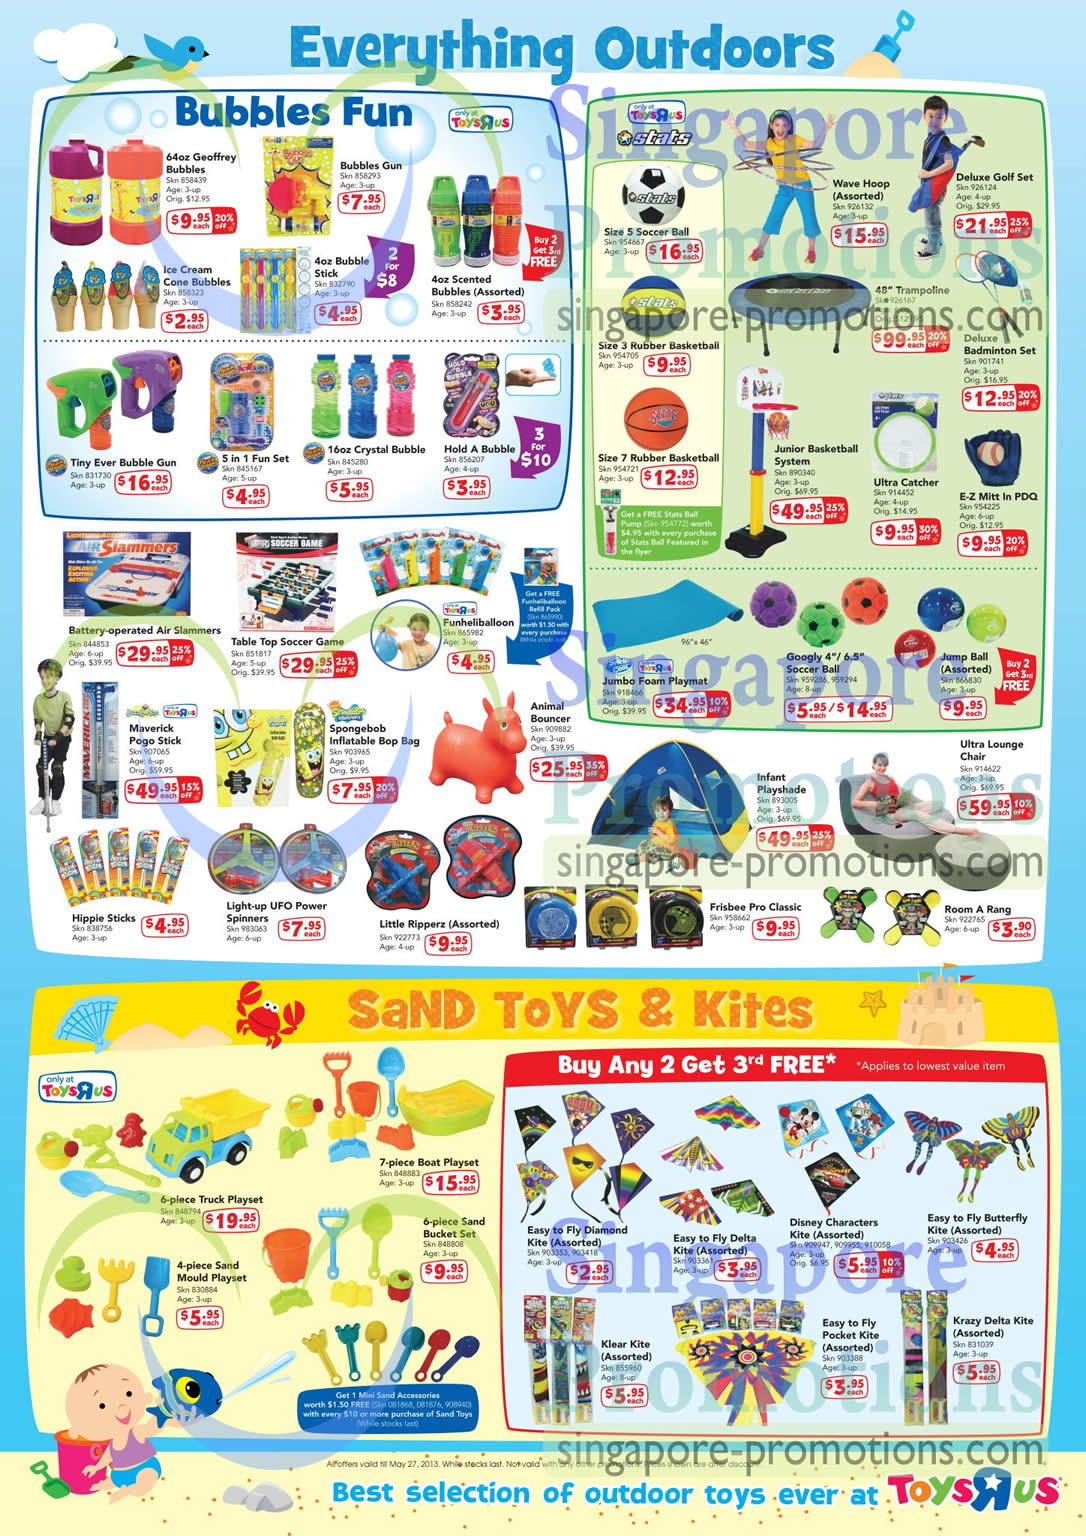 """Citibank Online Sign In >> Everything Outdoors, Bubbles Fun, Sand Toy, Kites » Toys """"R"""" Us & Babies """"R"""" Us Outdoor Fun ..."""